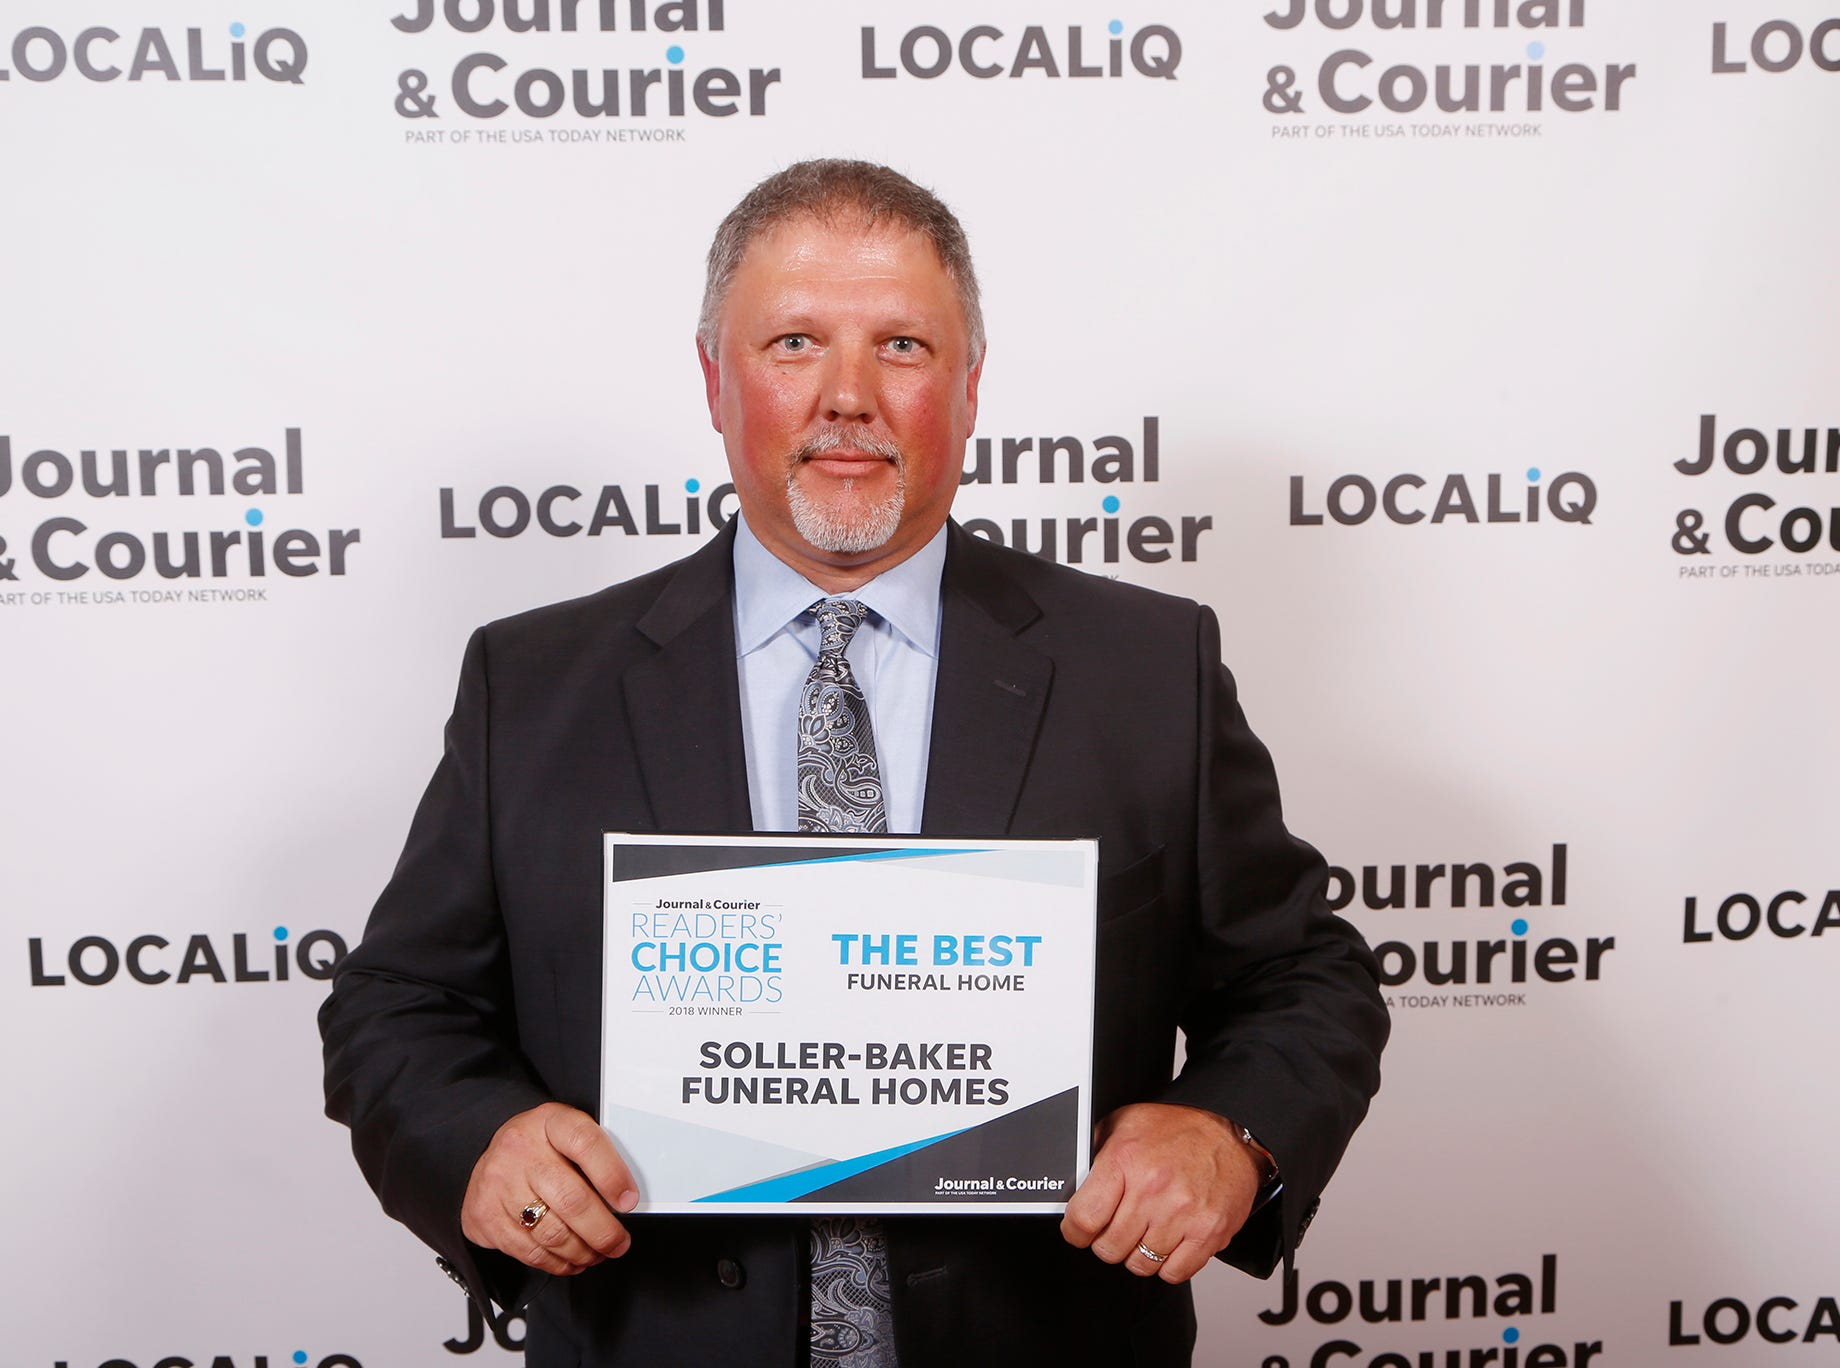 Soller-Baker Funeral Homes, Journal & Courier Readers' Choice Awards the best funeral home.